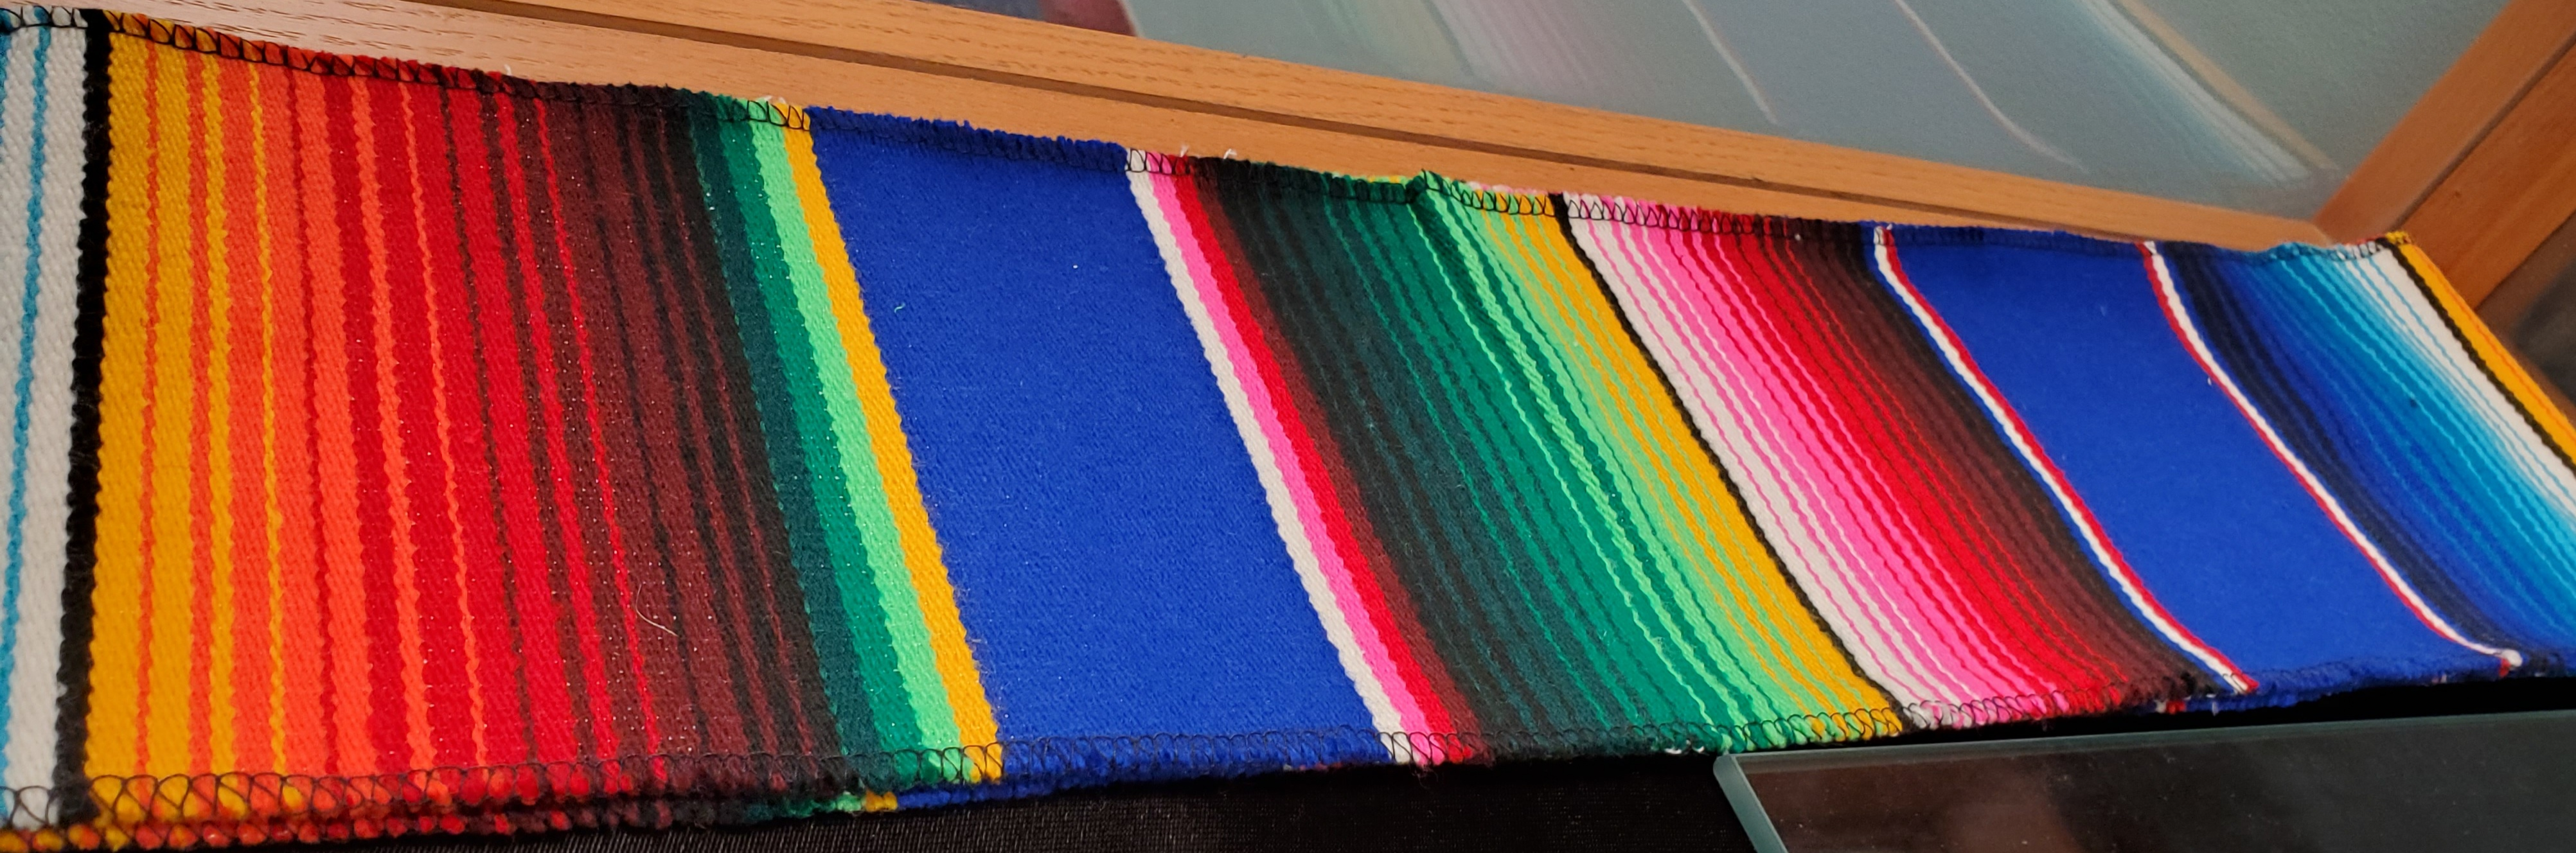 Commencement Sash for students of Hispanic descent. It has stripes of colors in hues of green, blue, pink, white, red, orange, black, and yellow